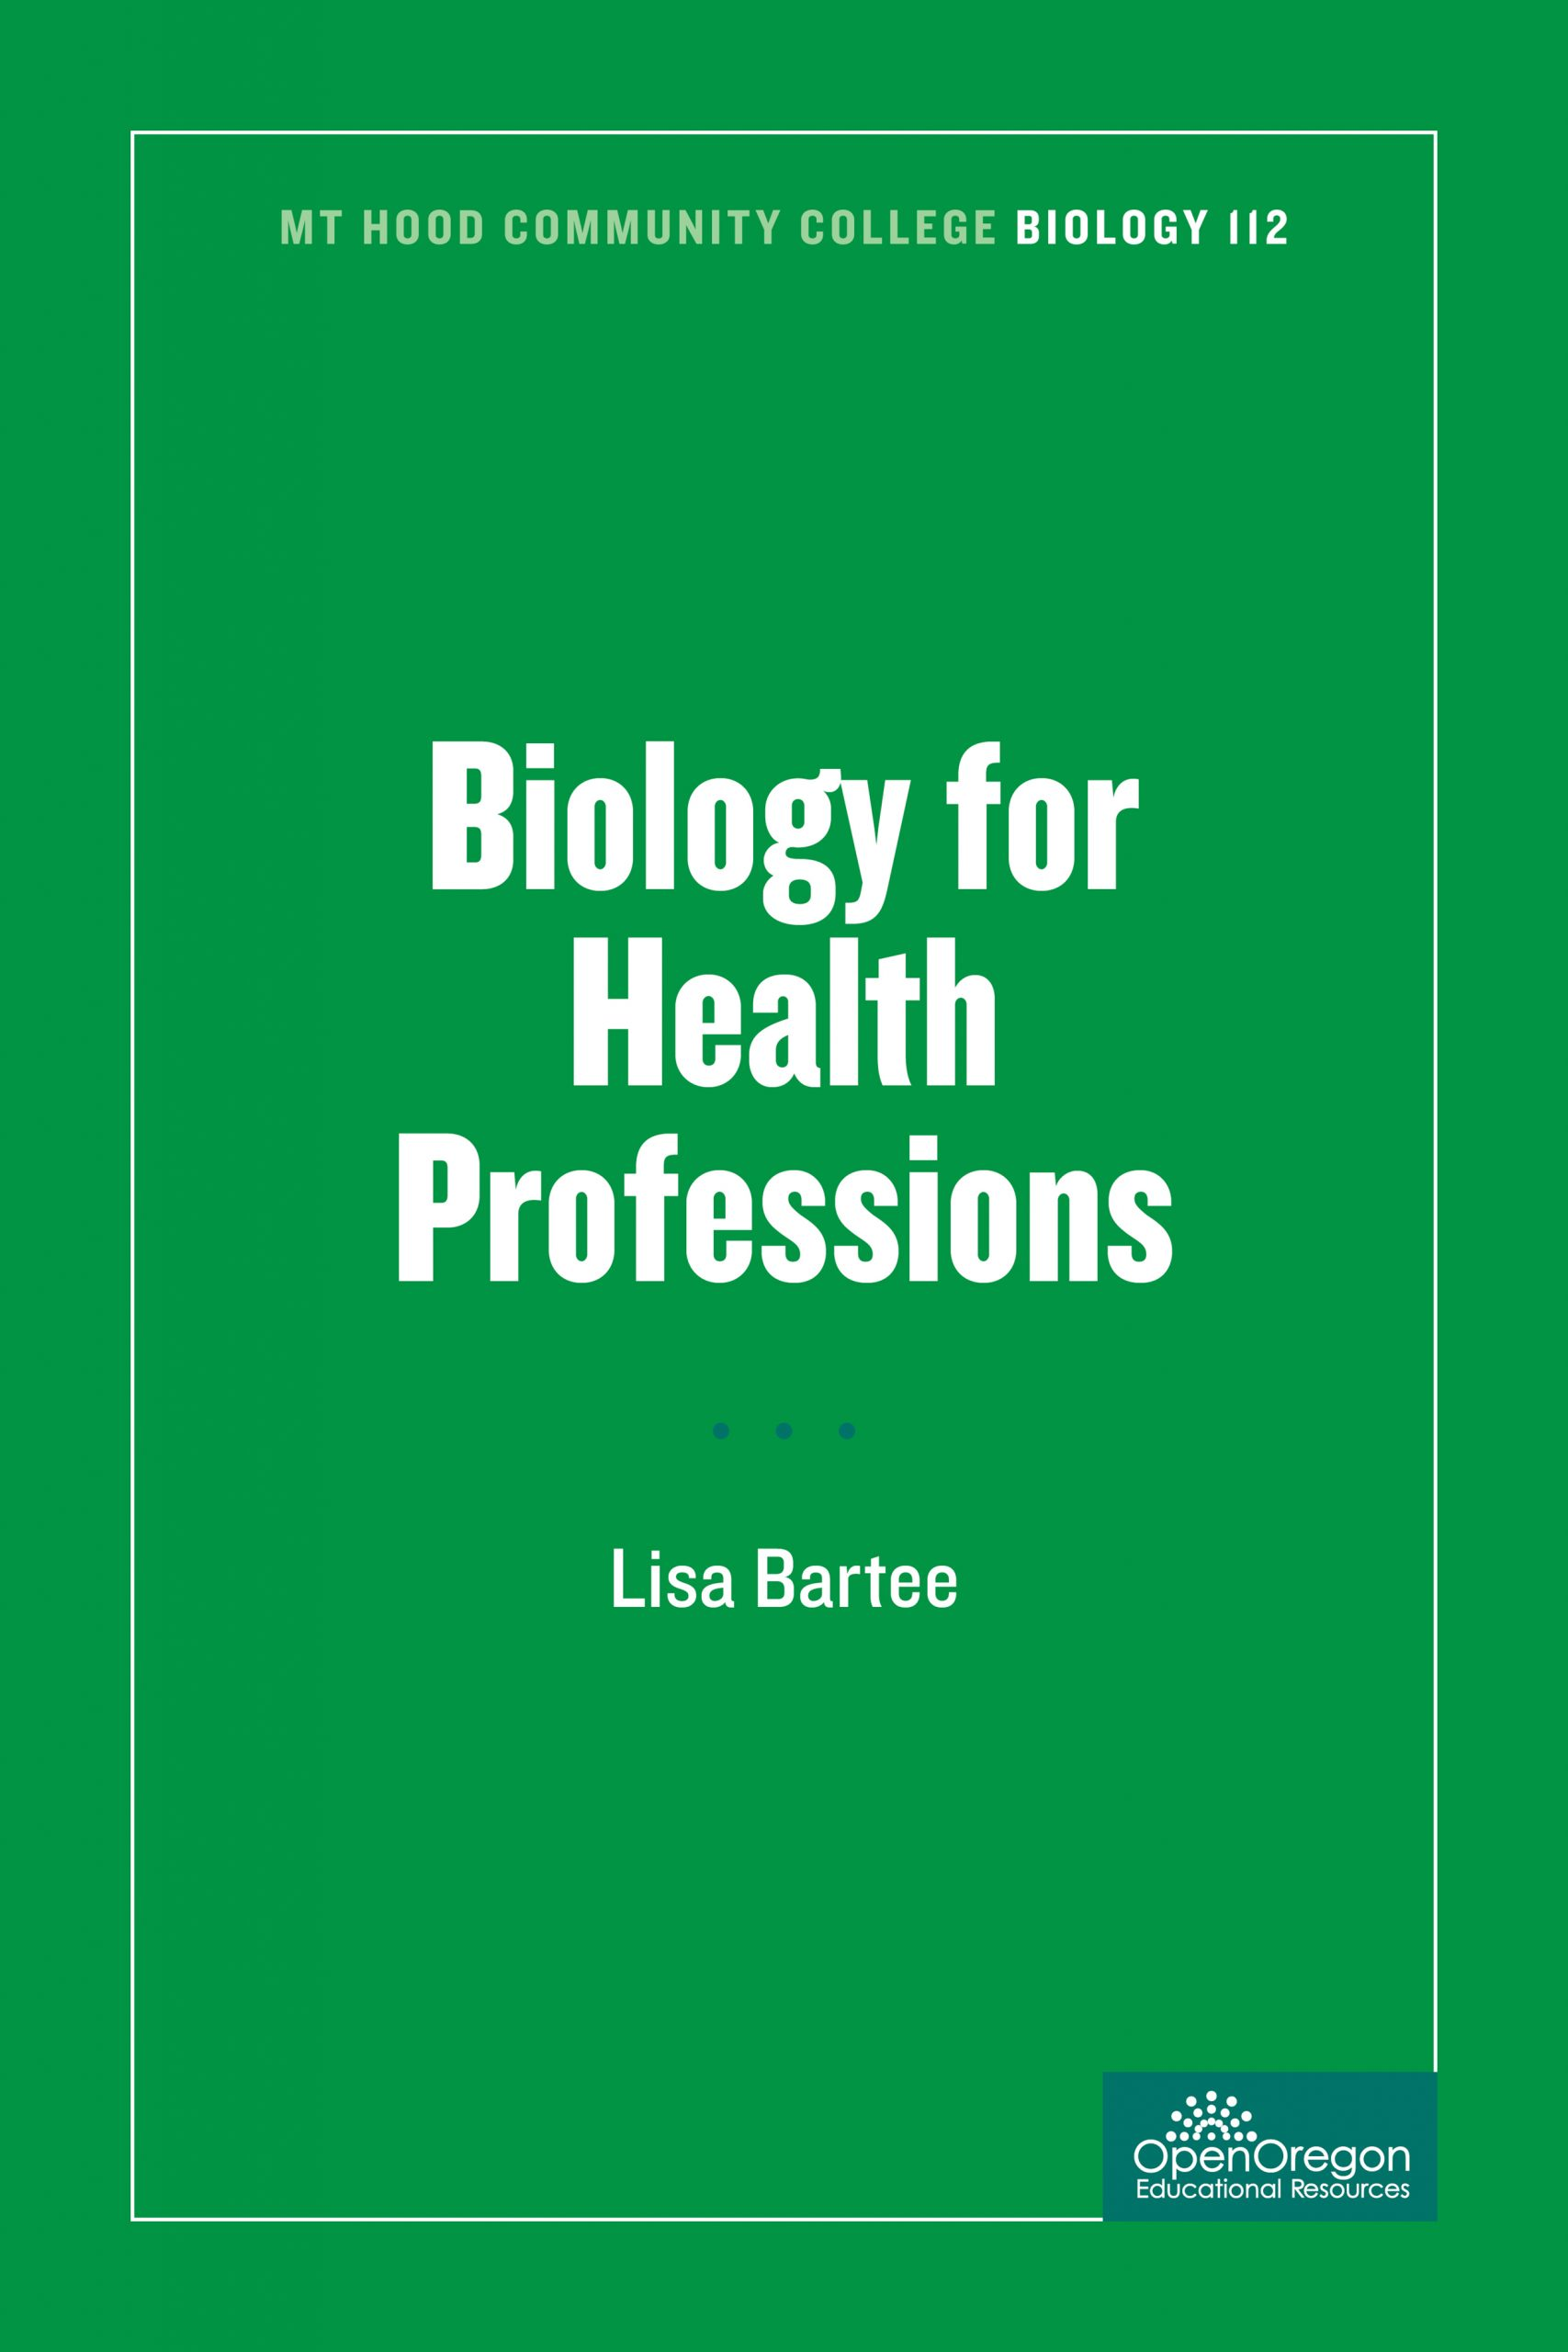 MHCC Biology 112: Biology for Health Professions